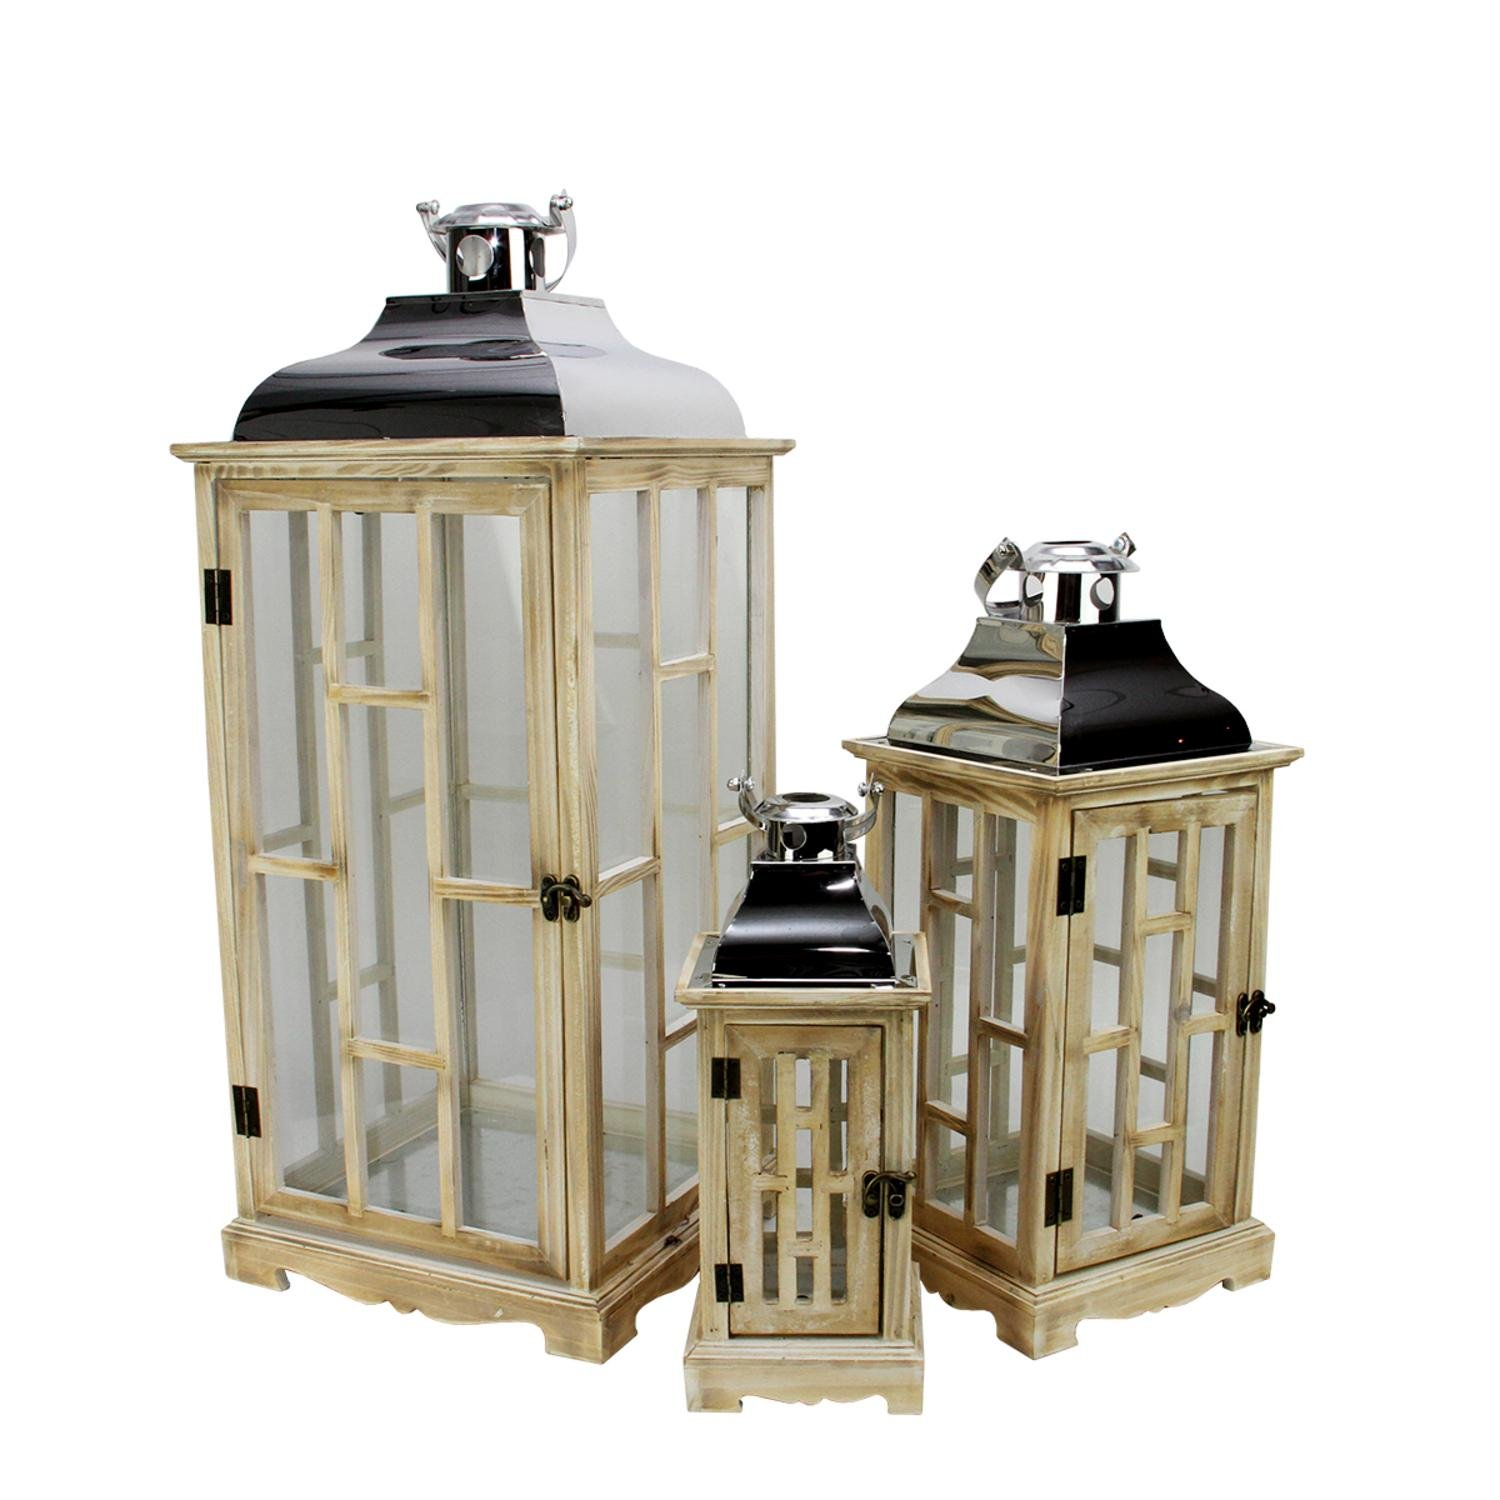 Christmas Tablescape Décor - Elegant tall rustic light brown country wooden lanterns - Set of 3 by Northlight